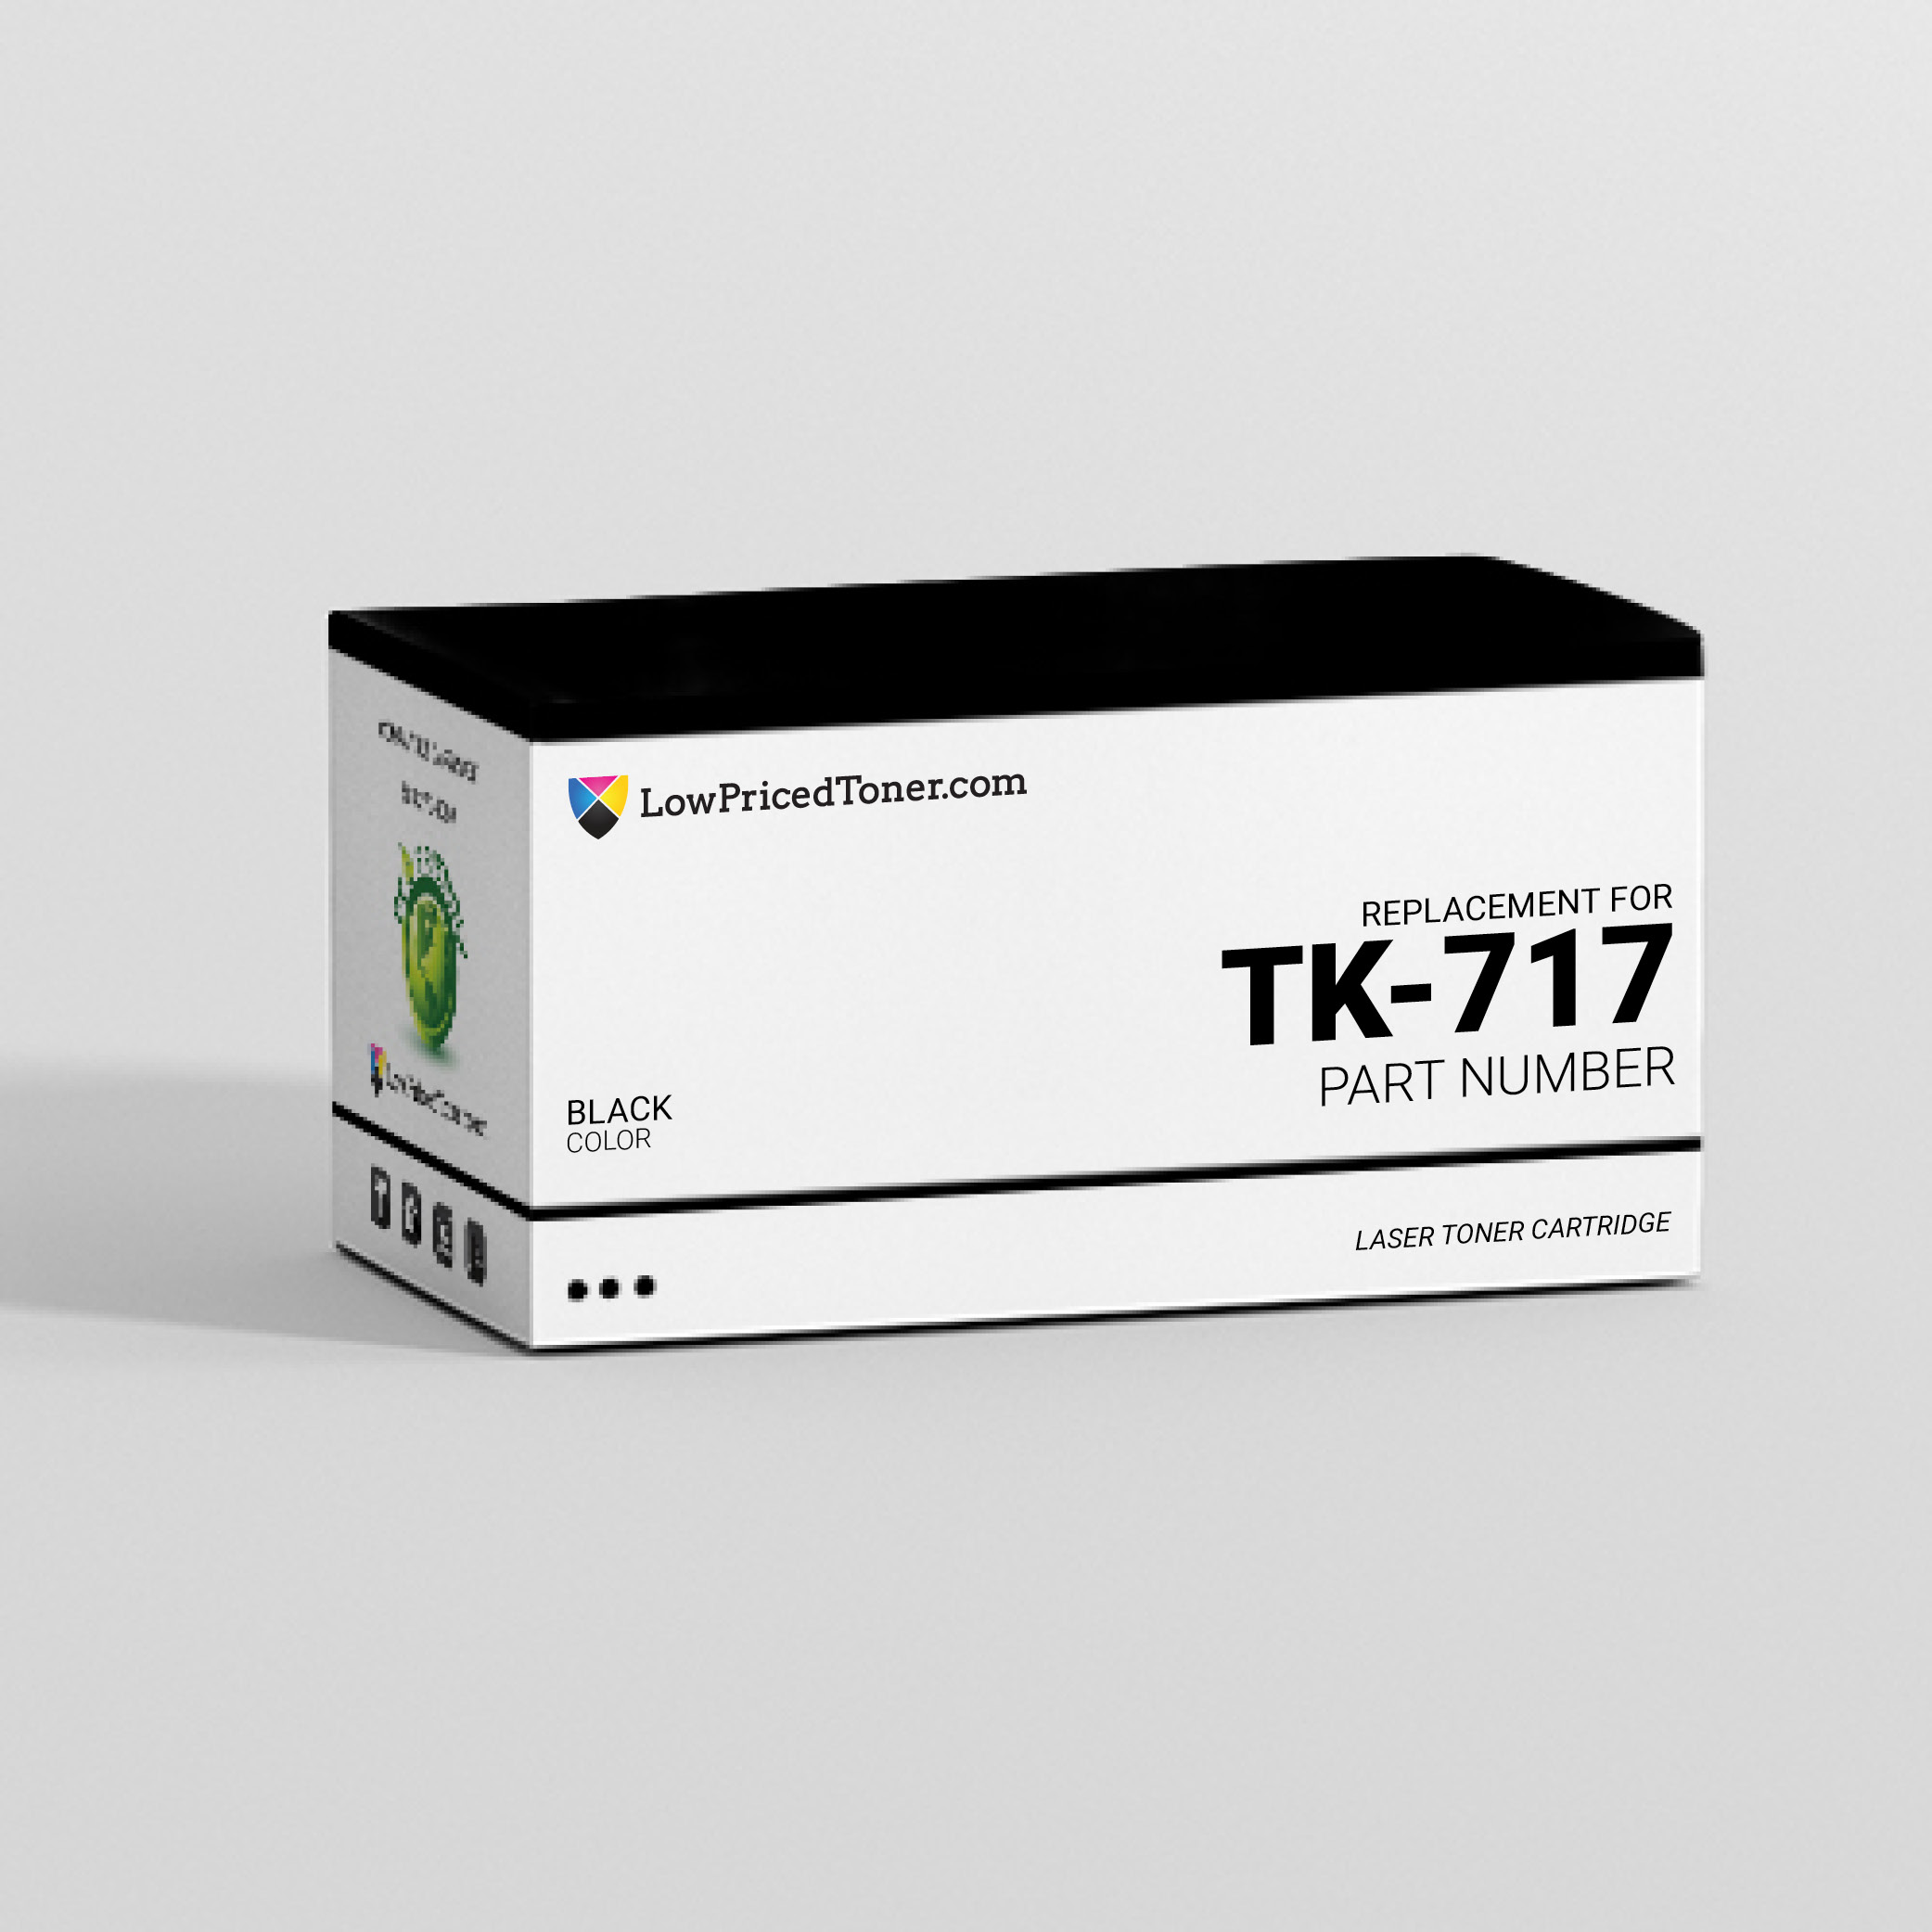 Kyocera Mita TK-717 Compatible Black Laser Toner Cartridge